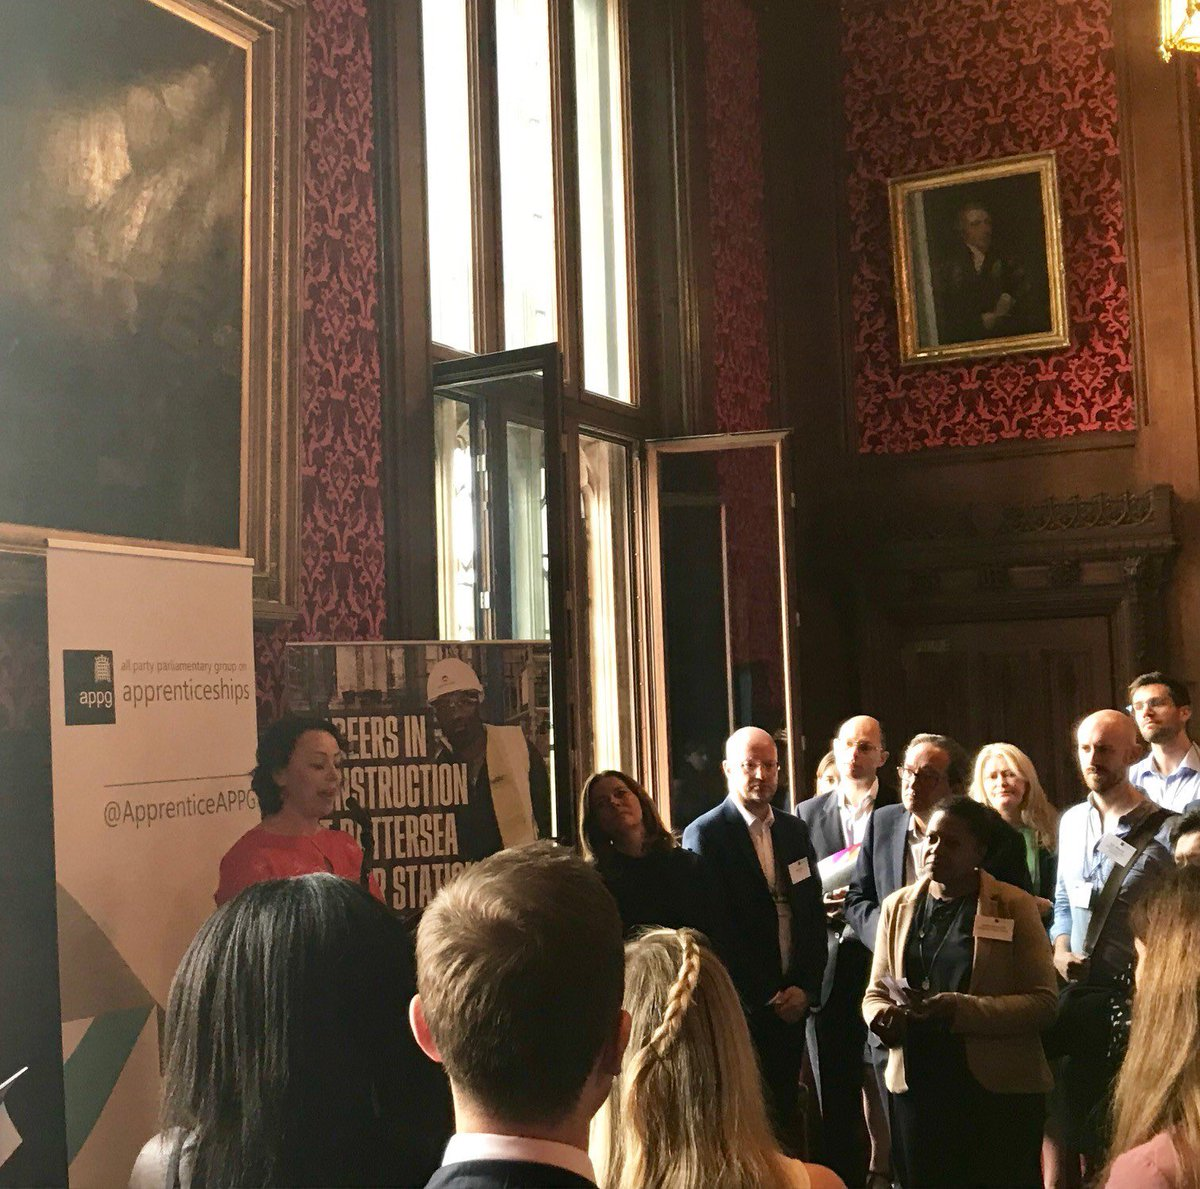 Delighted @AXAUK were in attendance at the @apprenticeappg 2018/19 report launch yesterday at the Houses of Parliament. Particularly great to hear from Co-Chairs @CatMcKinnell and @GillianKeegan on the importance of increasing no. of quality #apprenticeships.